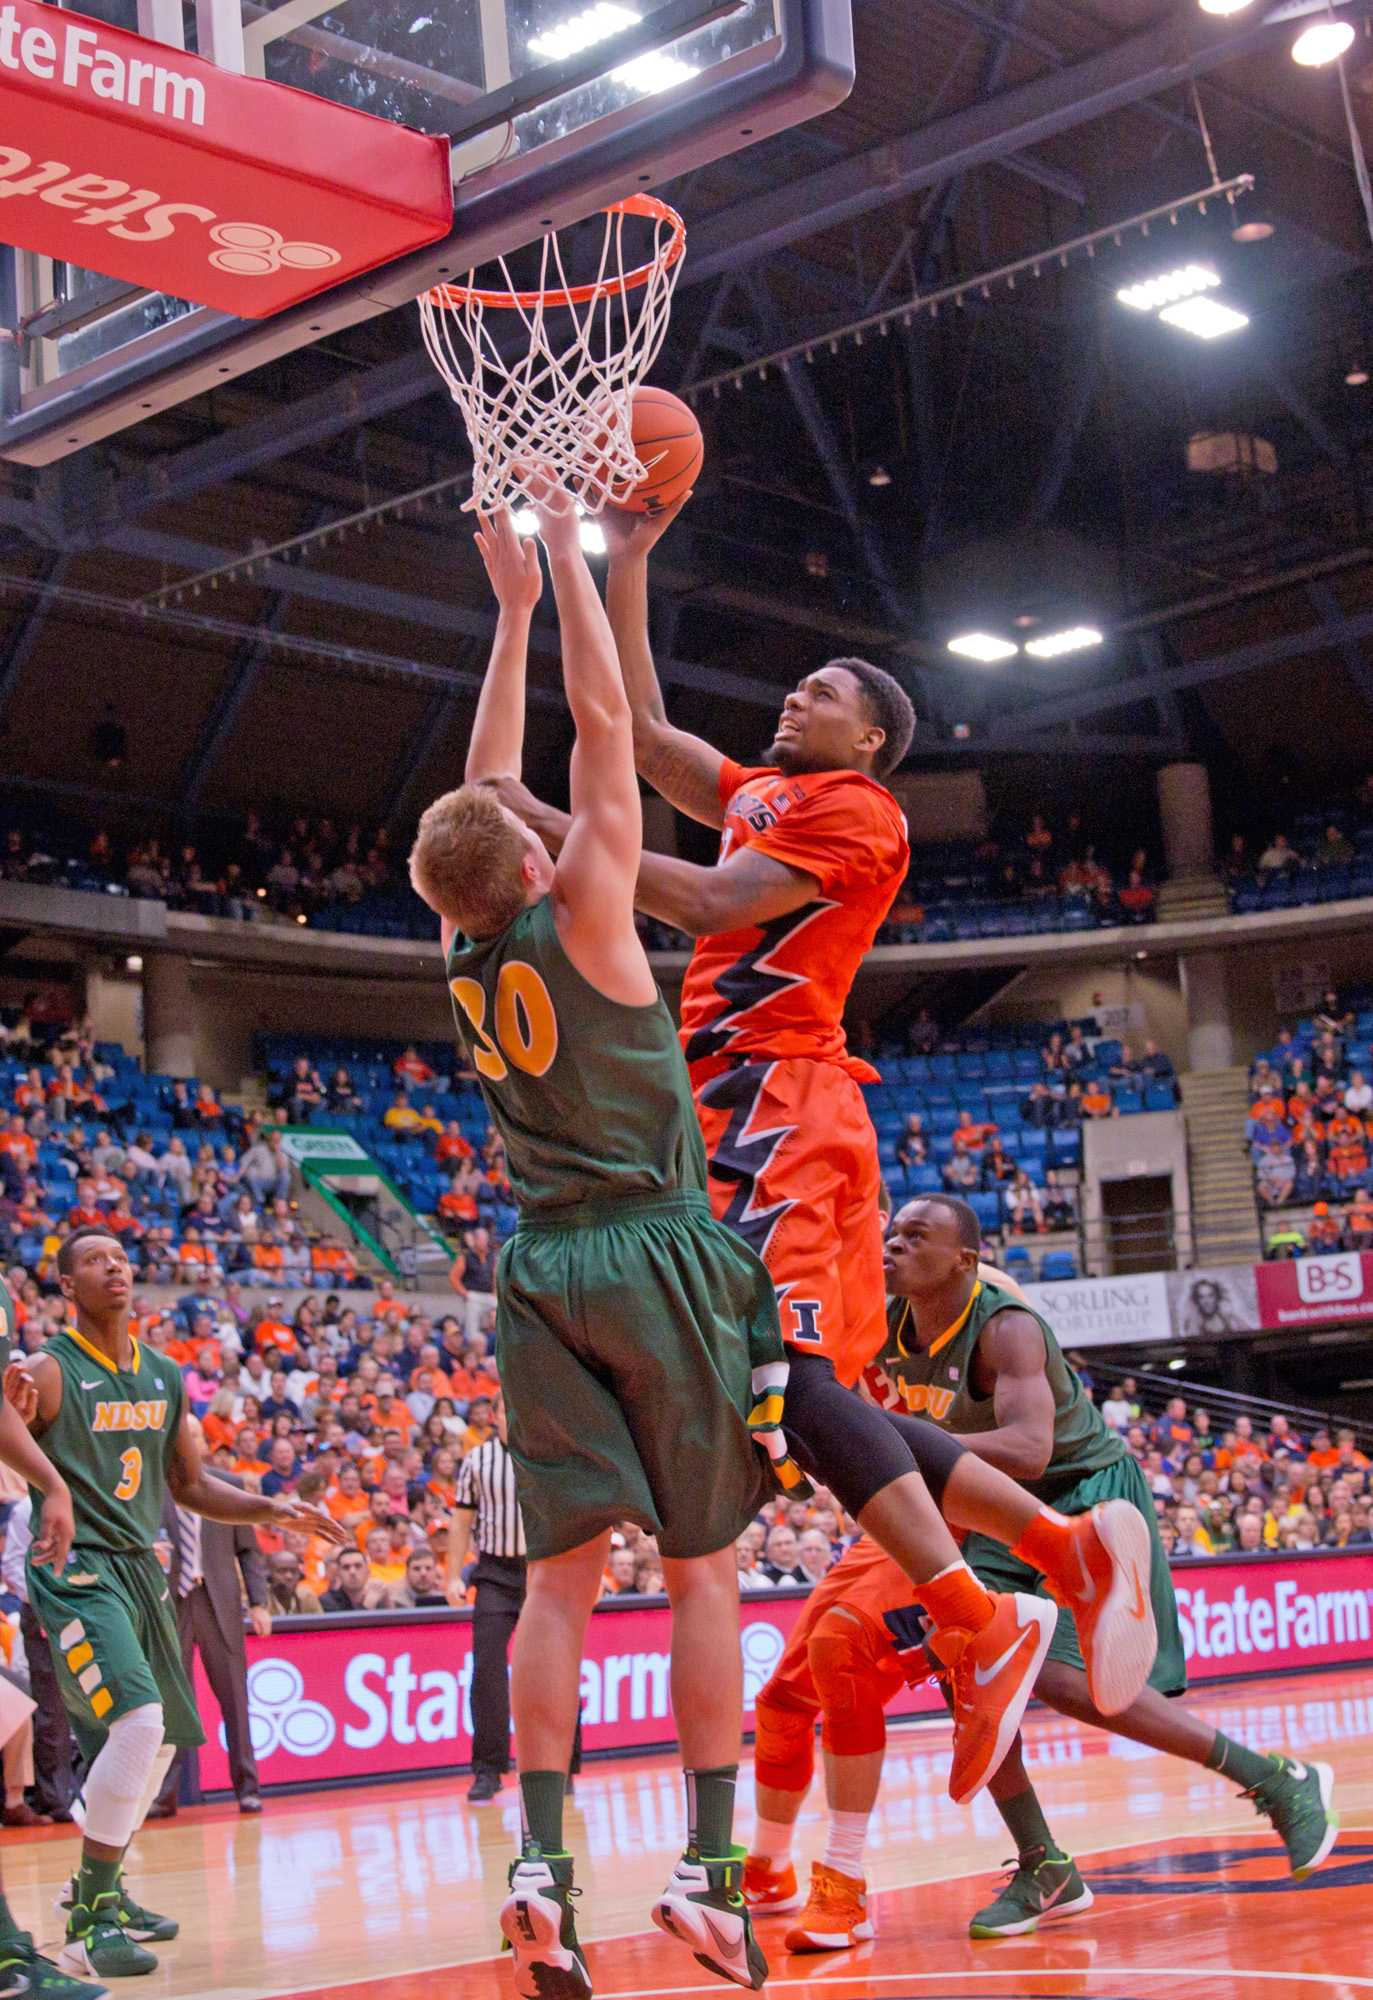 Mike Thorne Jr. takes the ball to the rim during the game against North Dakota State on Sunday at the Prairie Capitol Convention Center.